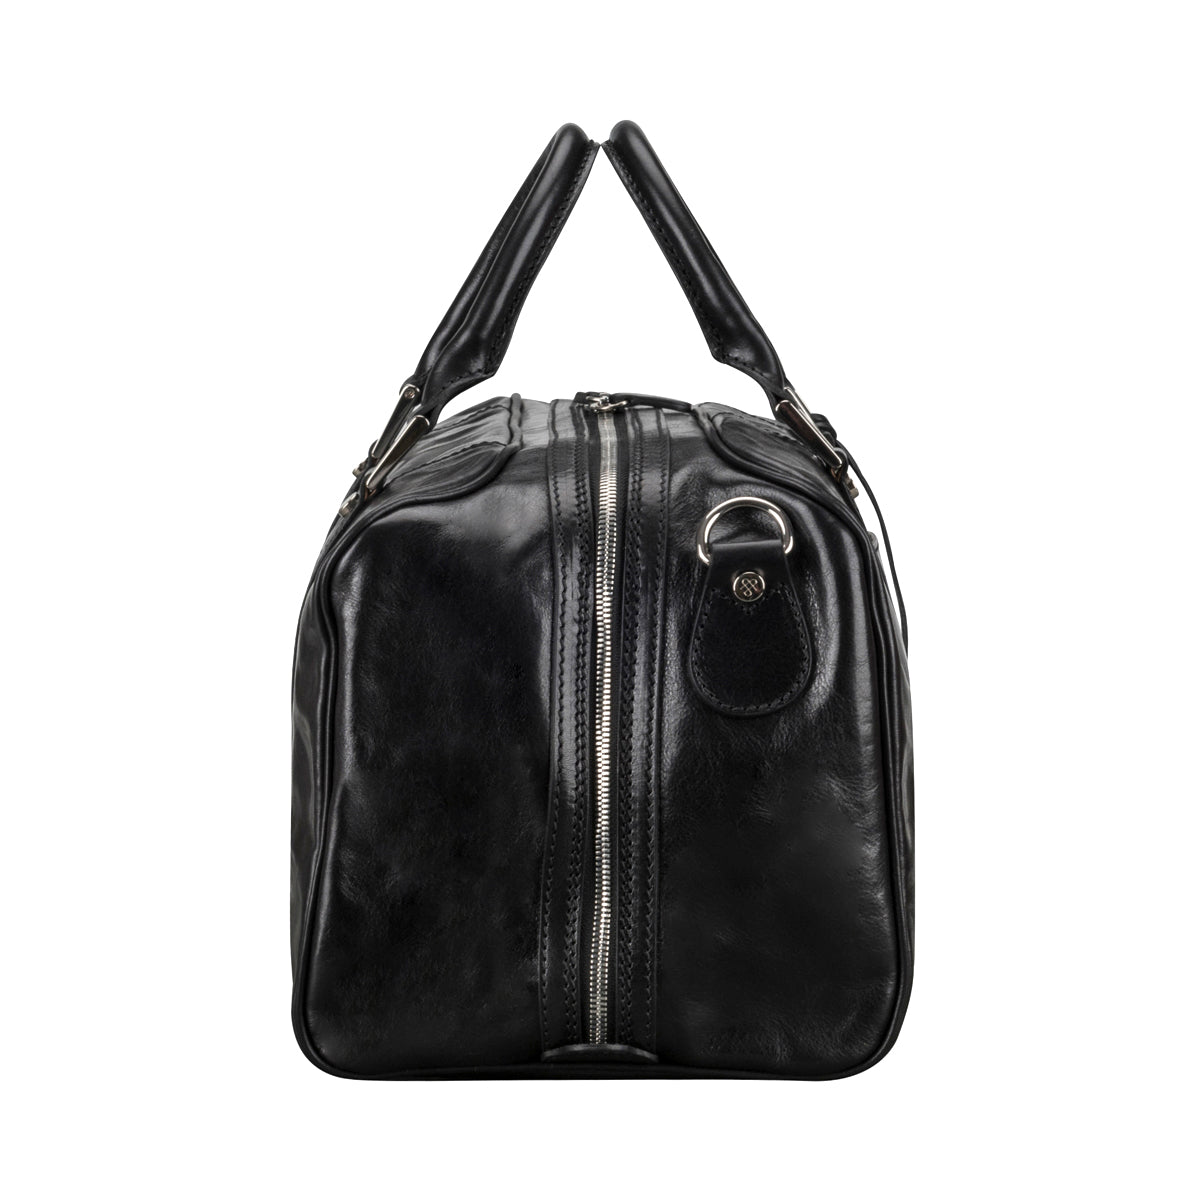 Image 3 of the 'Flero' Compact Black Veg-Tanned Leather Holdall